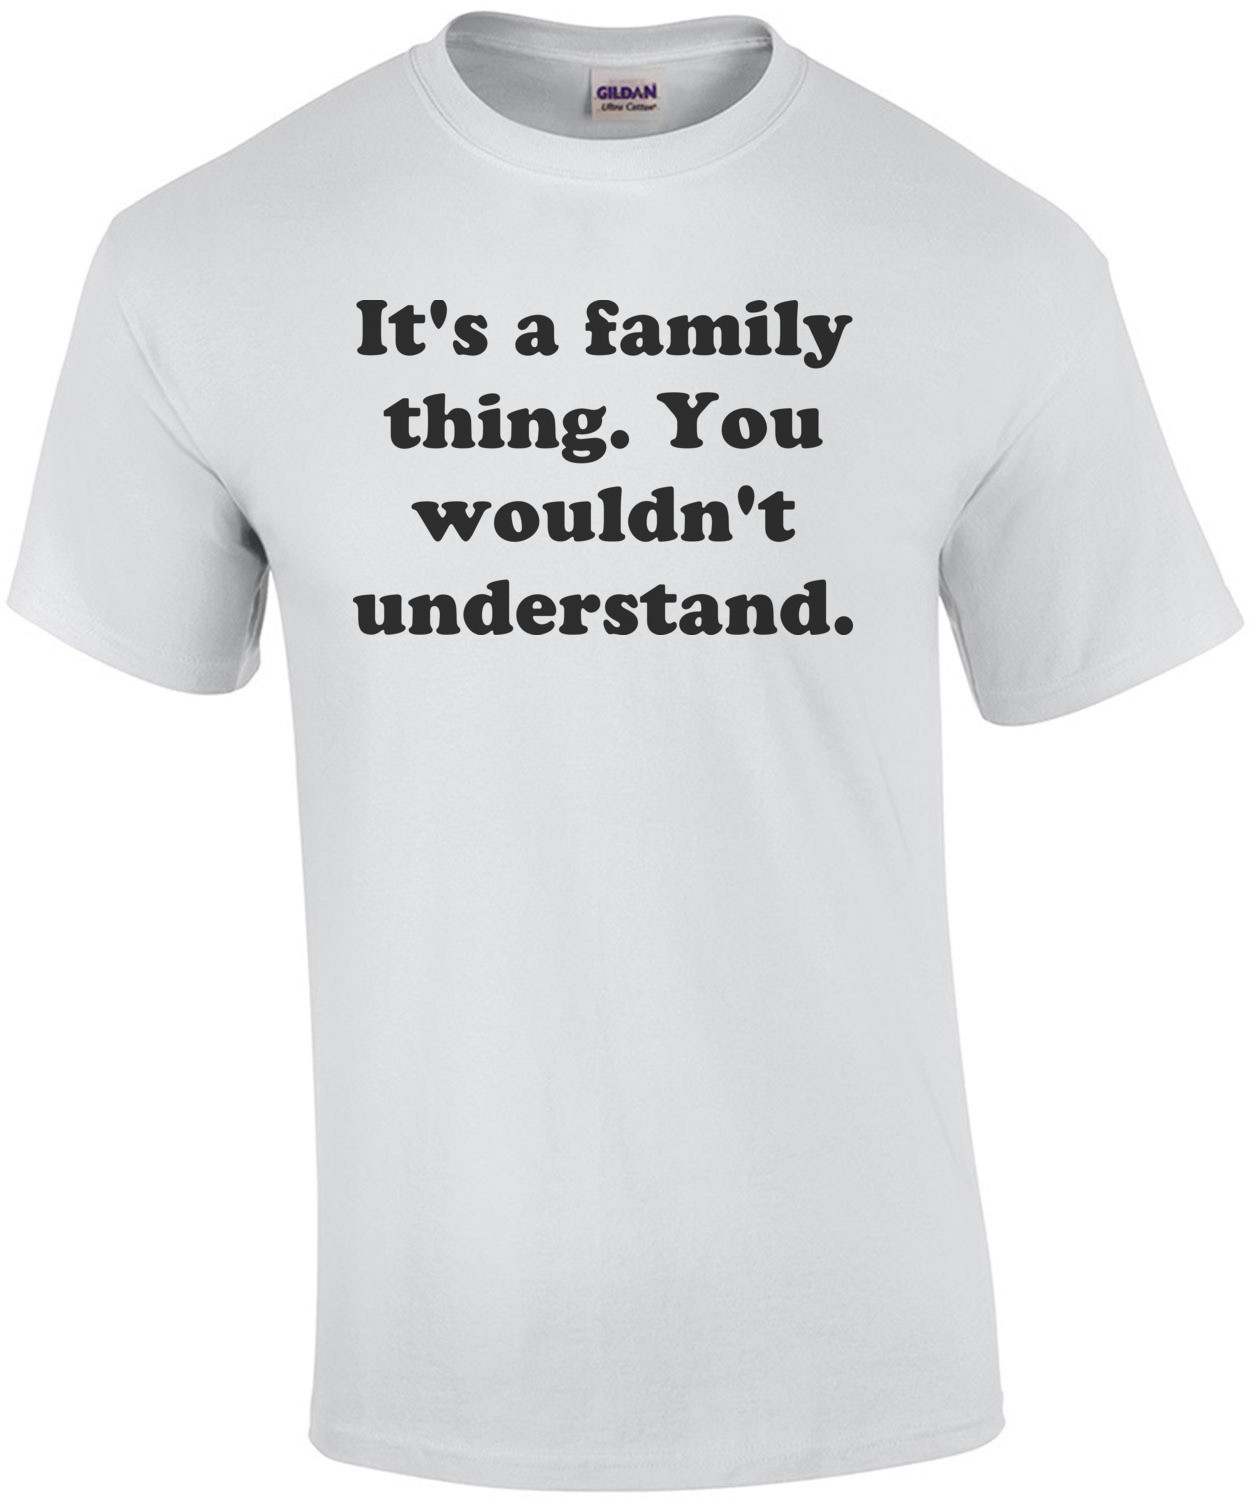 It's a family thing. You wouldn't understand. Shirt